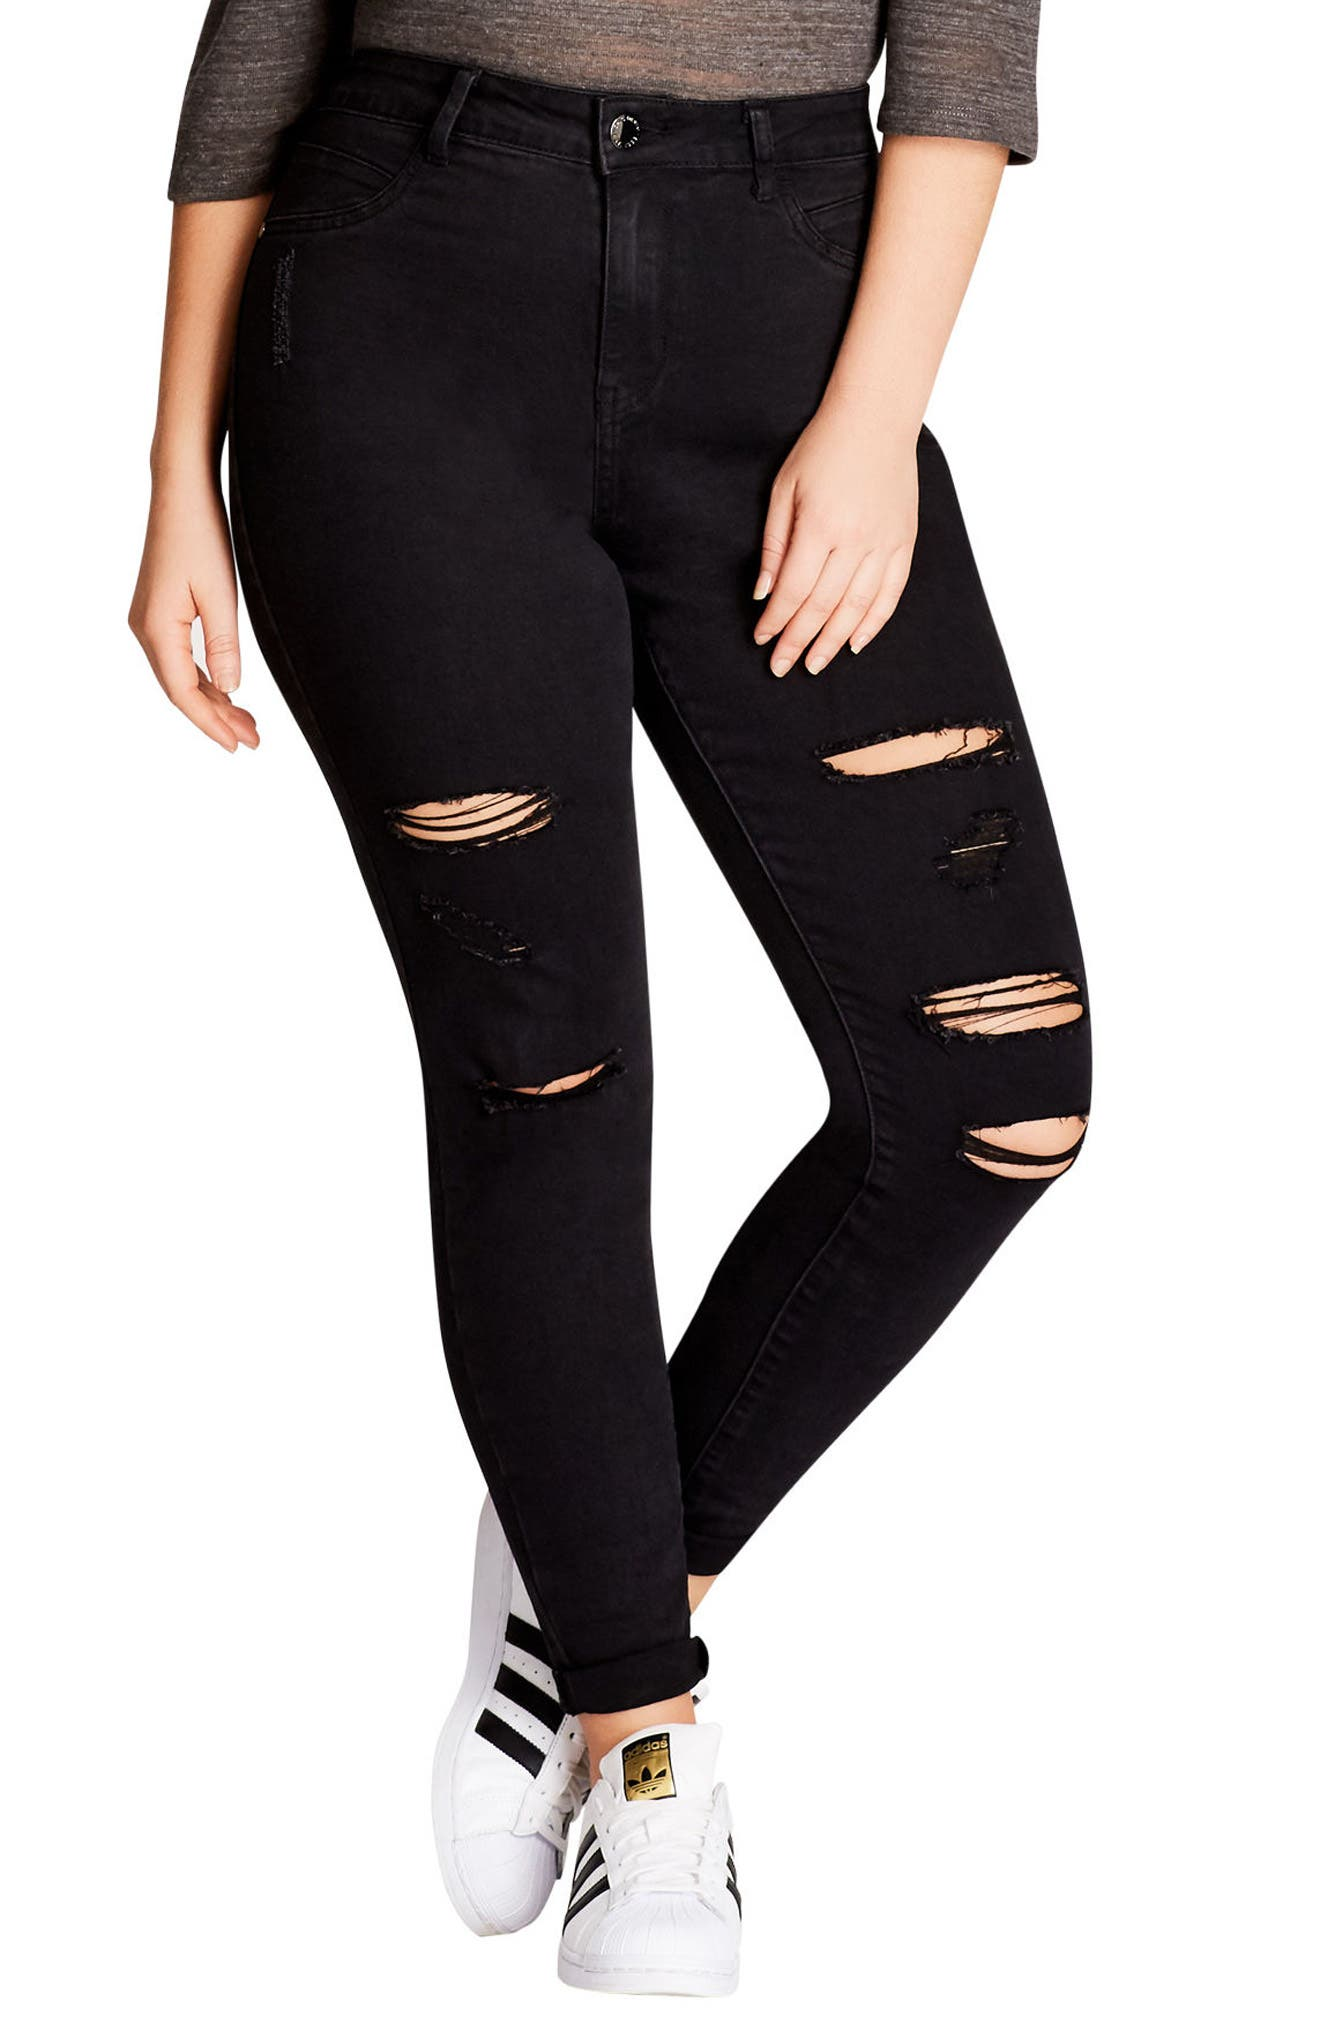 City Chic Rock 'n' Roll Destroyed Skinny Jeans (Plus Size)